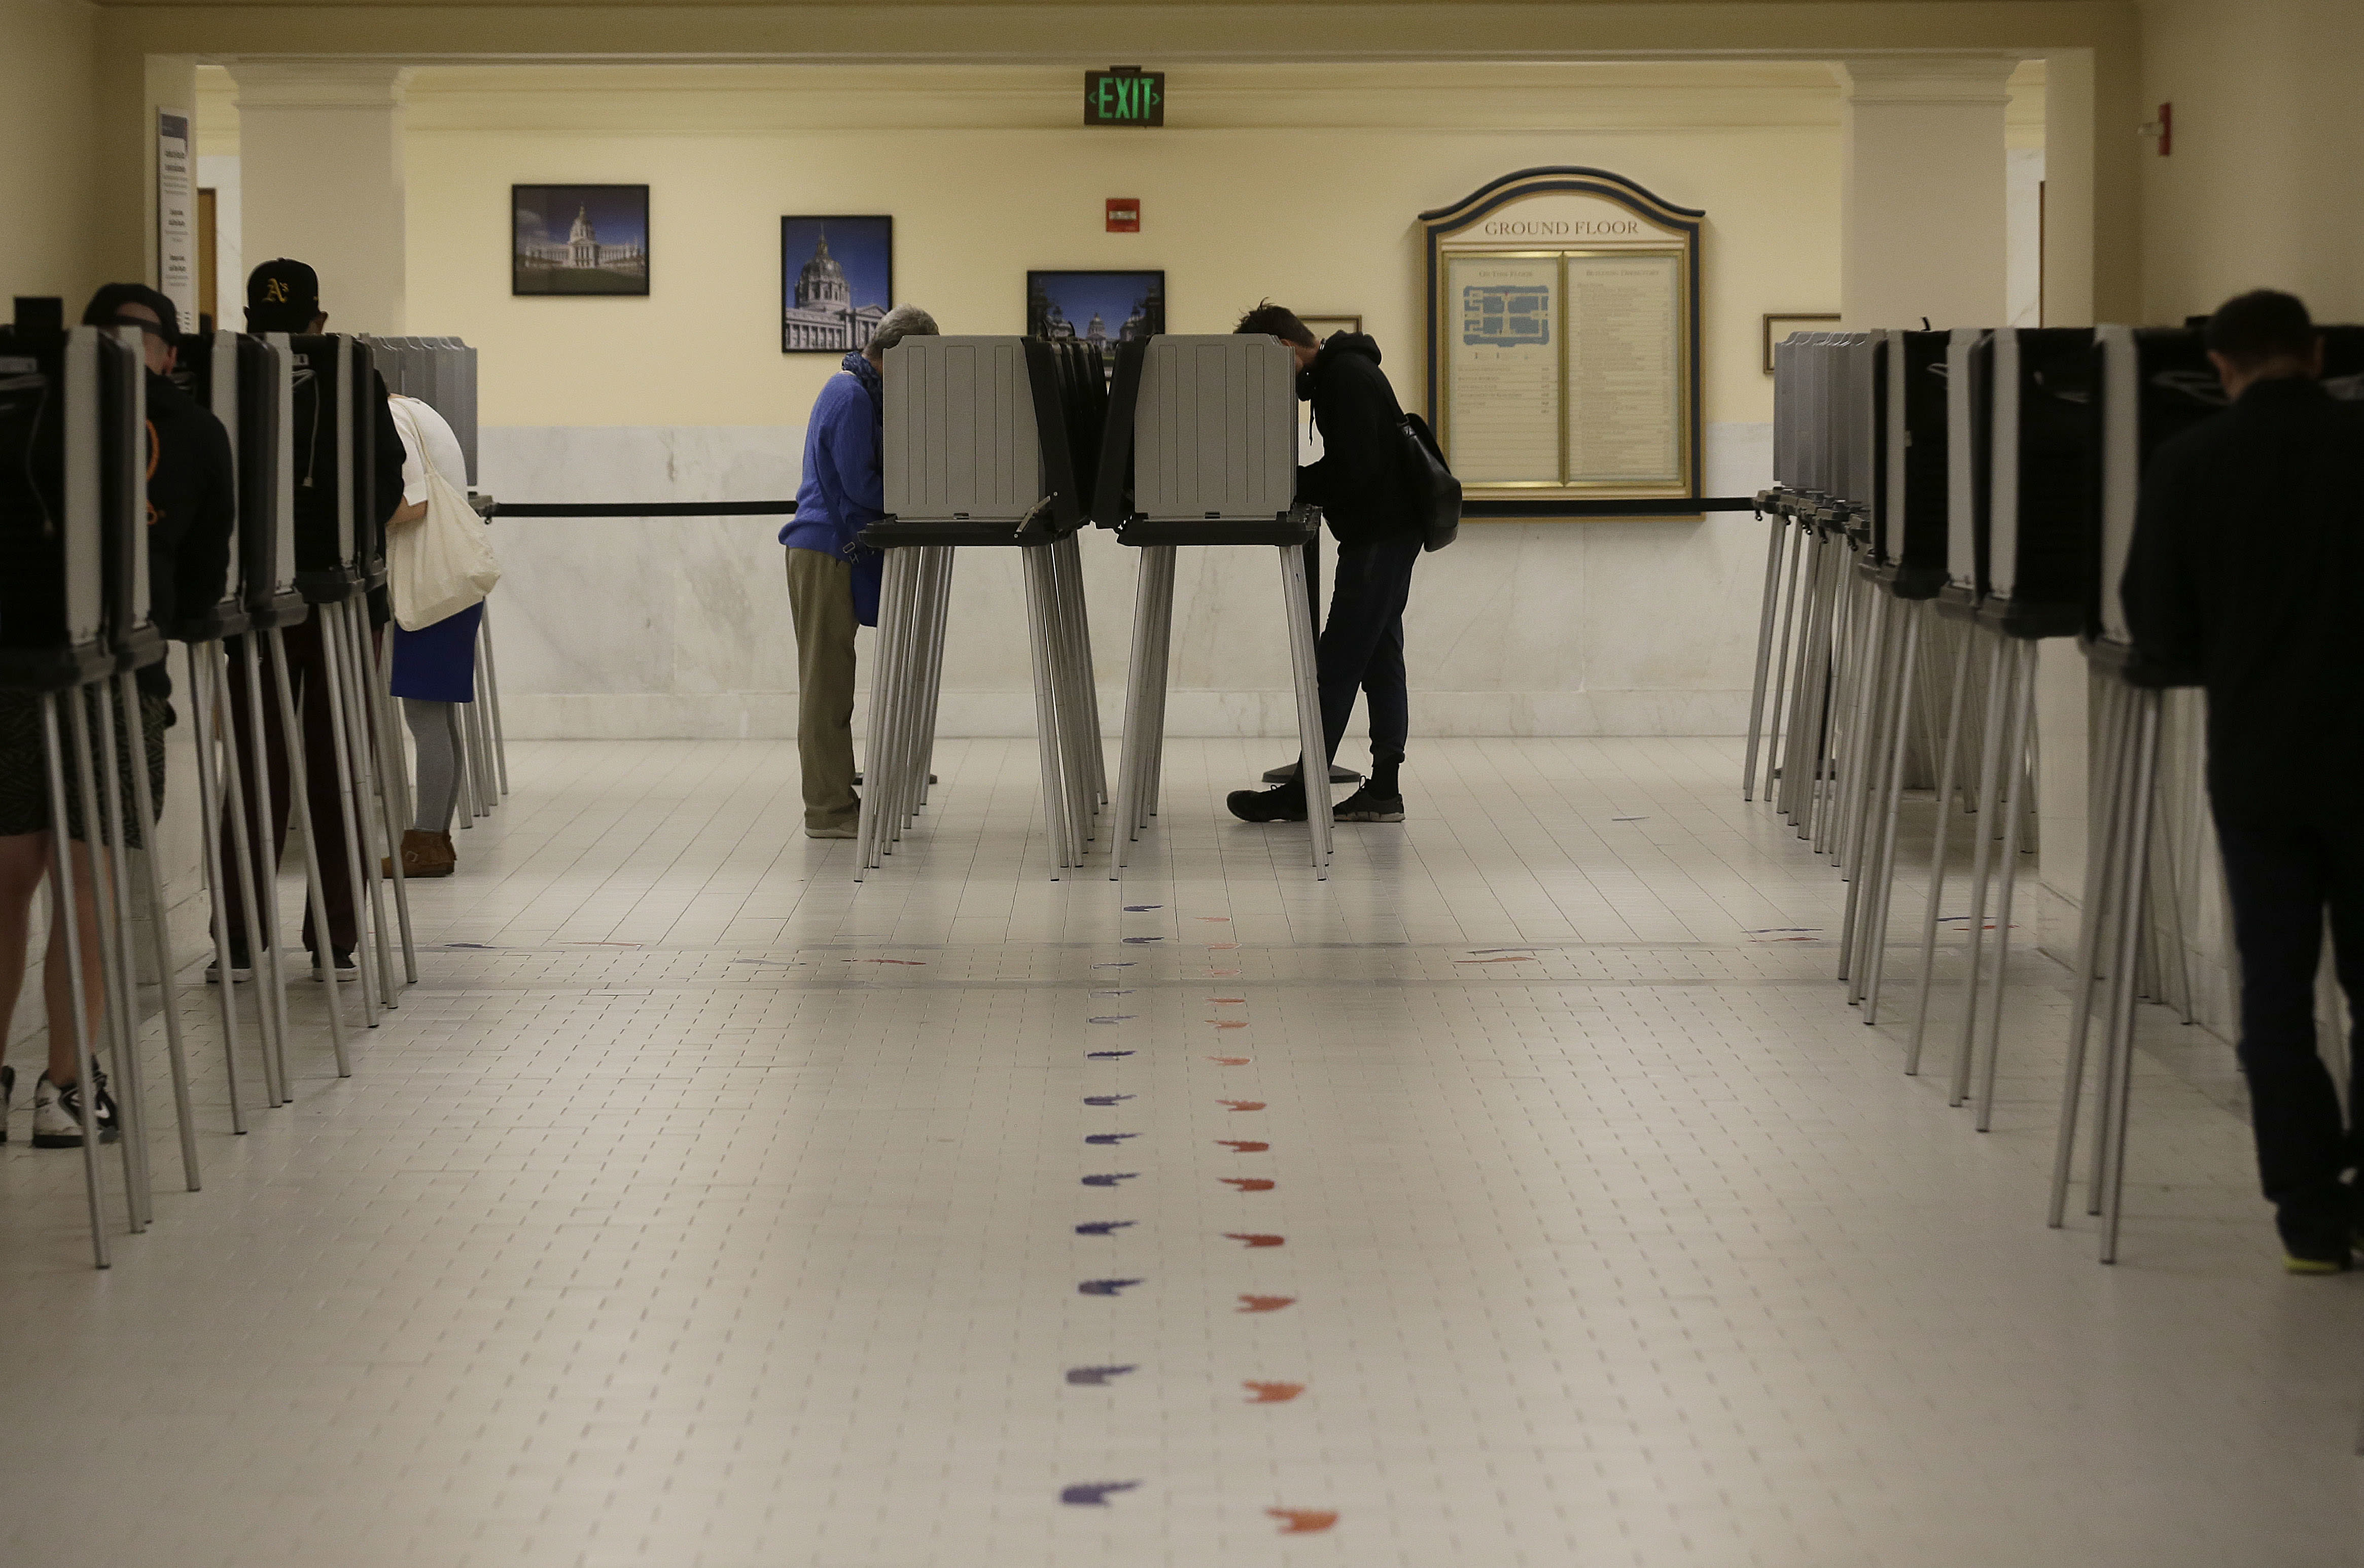 File - In this June 7, 2016 file photo, voters cast ballots in voting booths at City Hall in San Francisco. San Francisco will become the first city in California and one of only a handful nationwide to allow noncitizens to vote in a local election in November. They're only allowed to vote in the school board race. (AP Photo/Jeff Chiu, File)